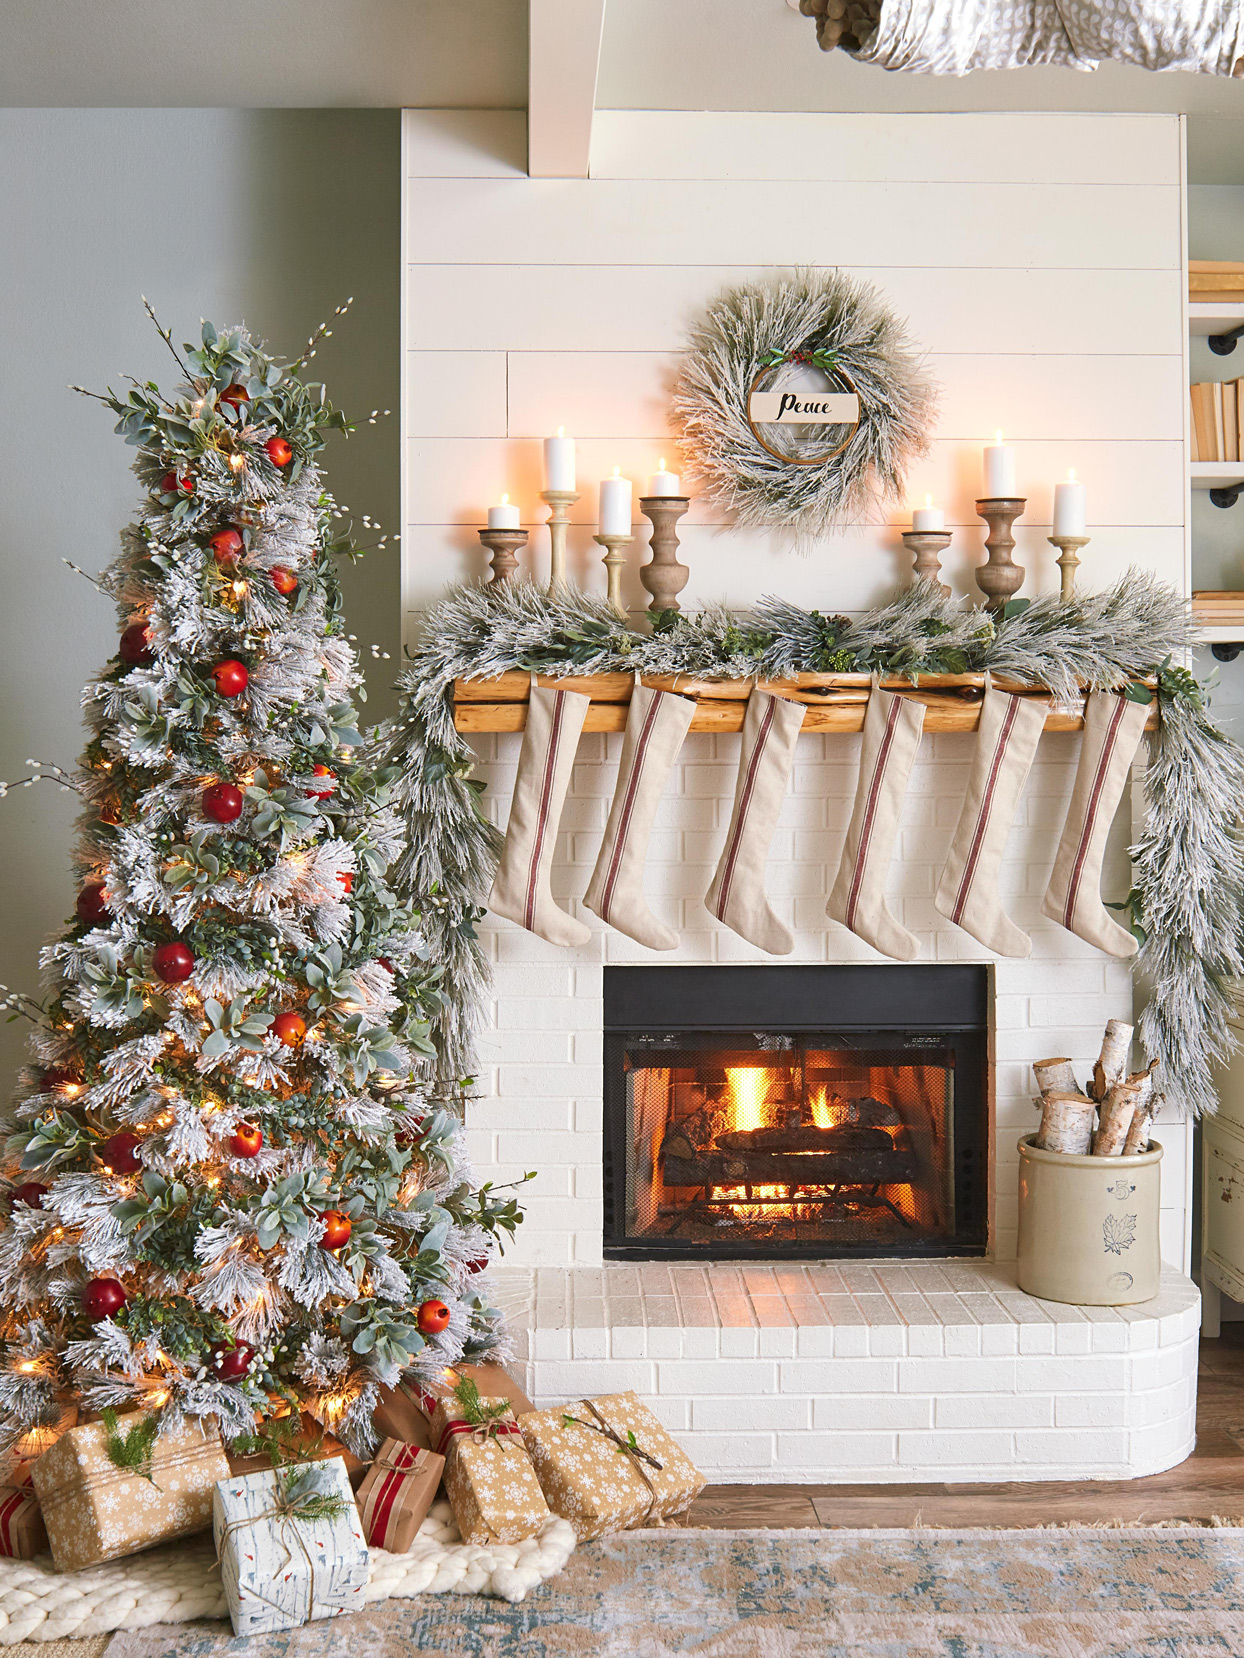 red striped stockings hanging from neutral-colored fireplace